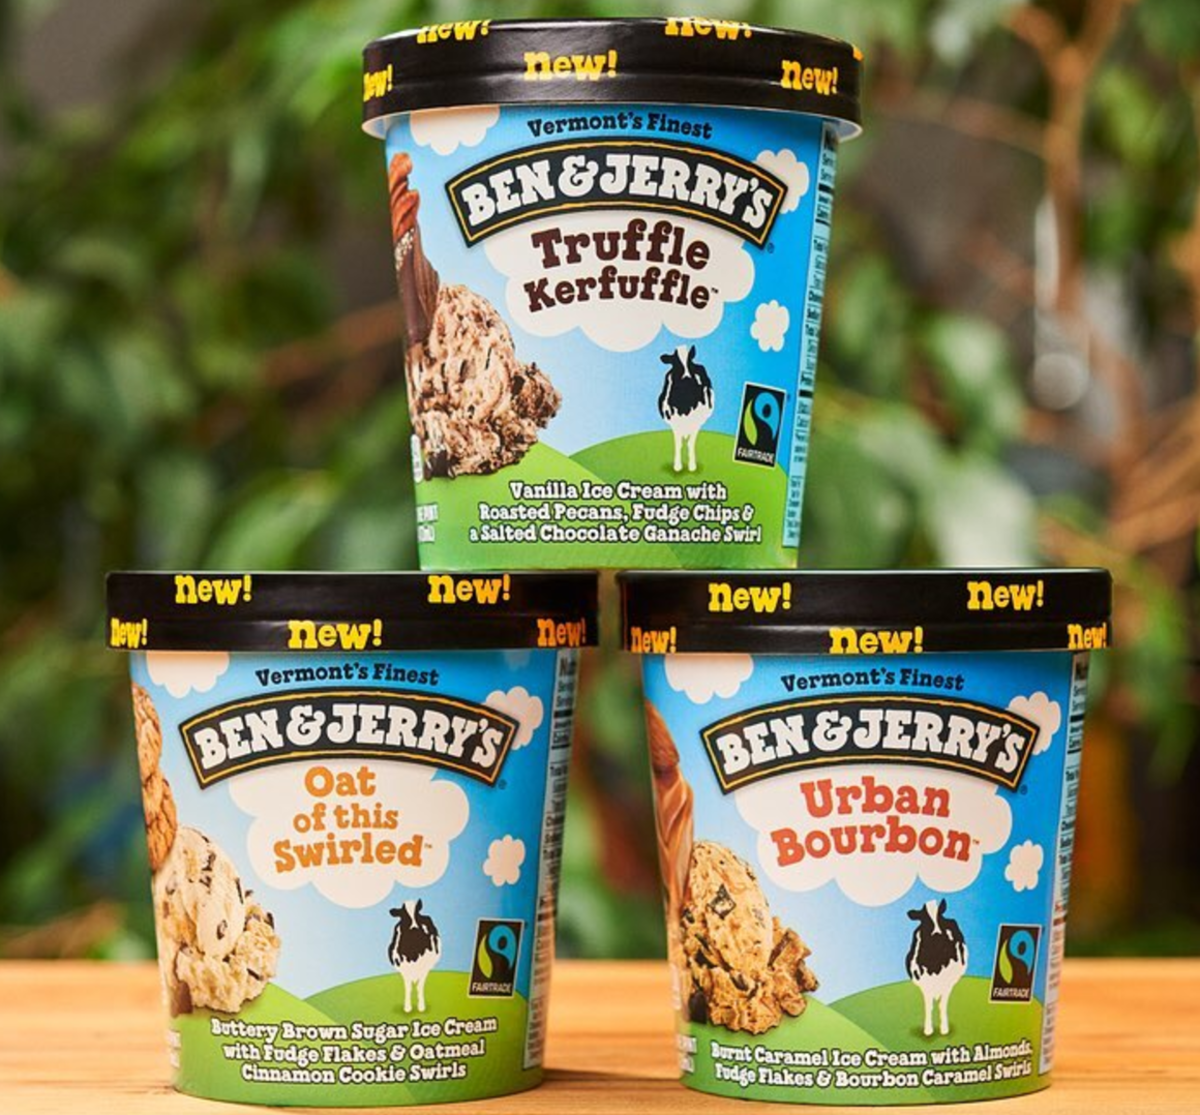 Glyphosate in Ben & Jerry's